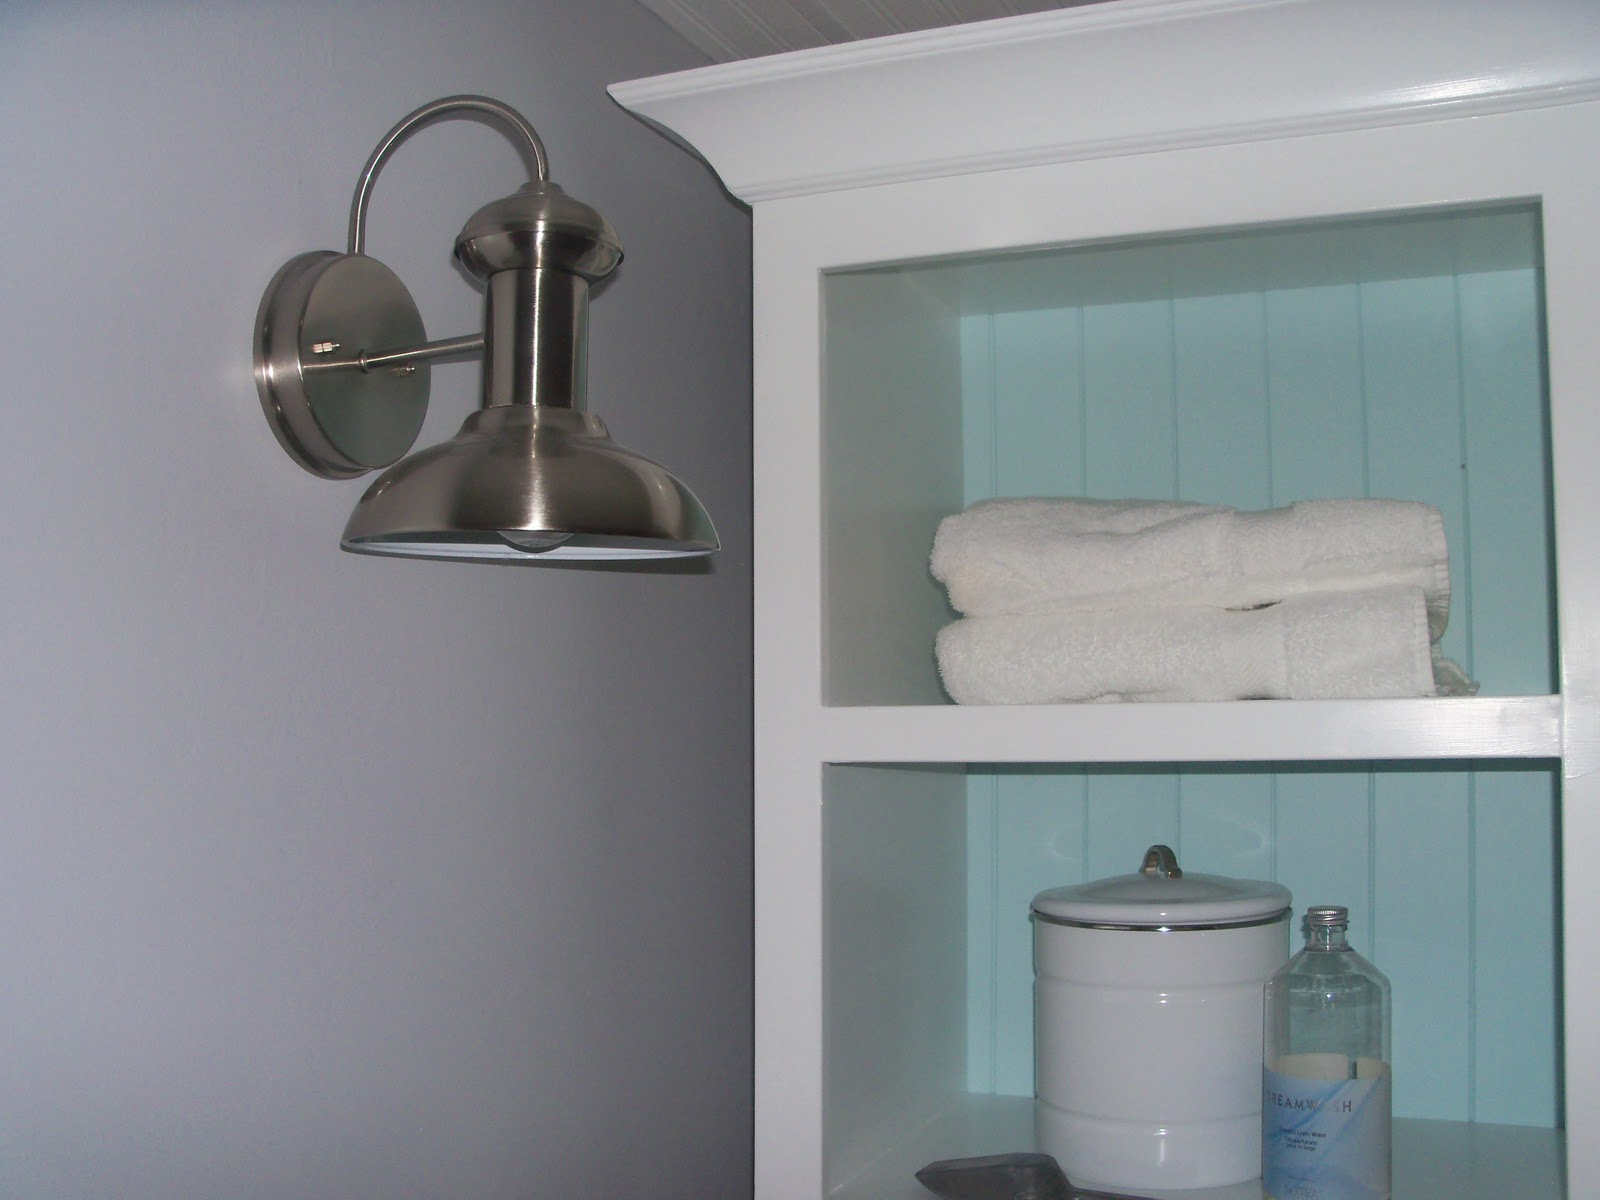 Home To Stay: Laundry Room Sneak Peak